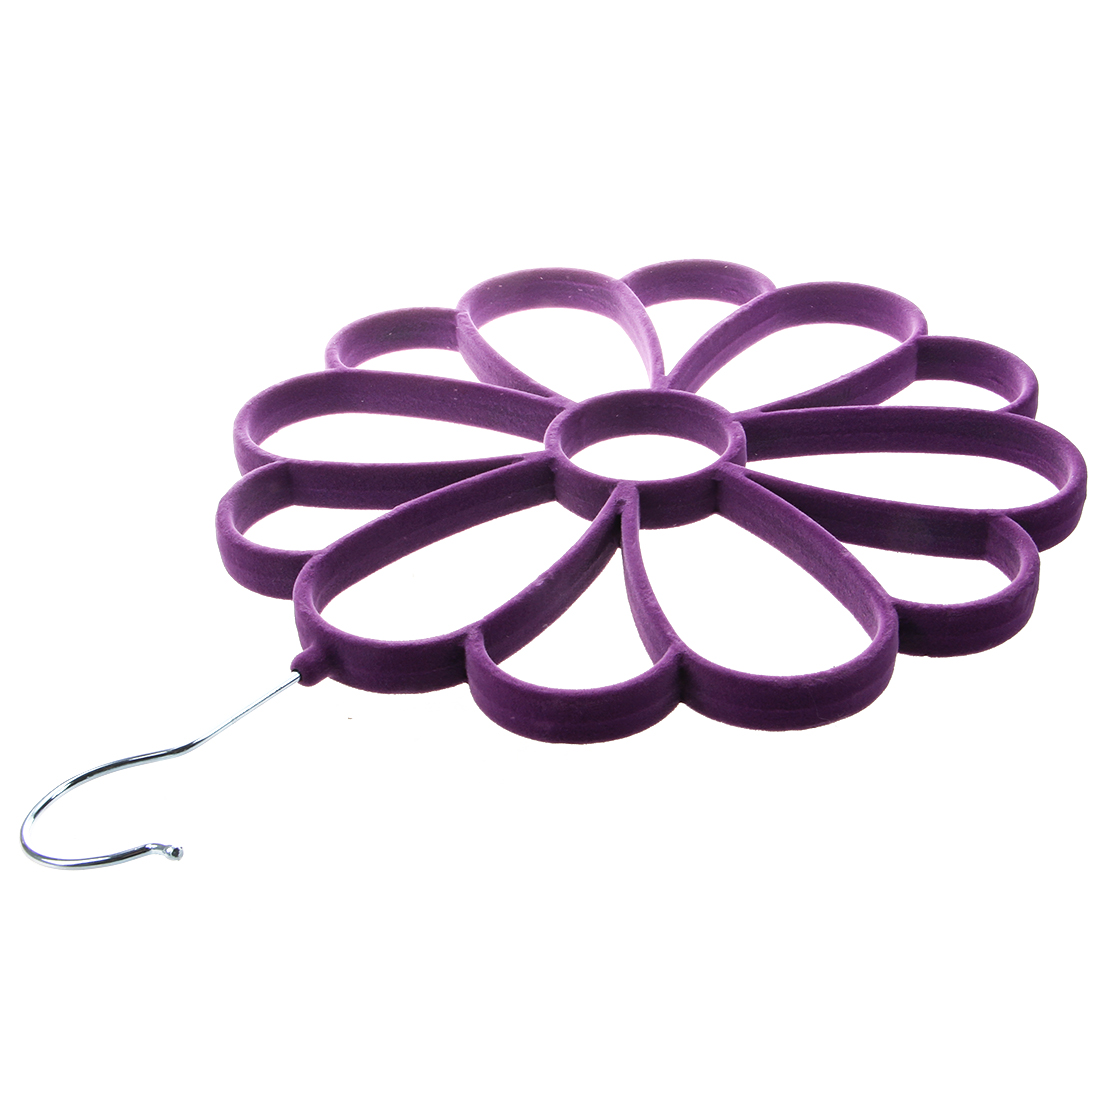 ALIM New multifunction Soft Scarf Hanger/Organizer for Closet Protect and Organize Your Delicate Scarves (Purple)